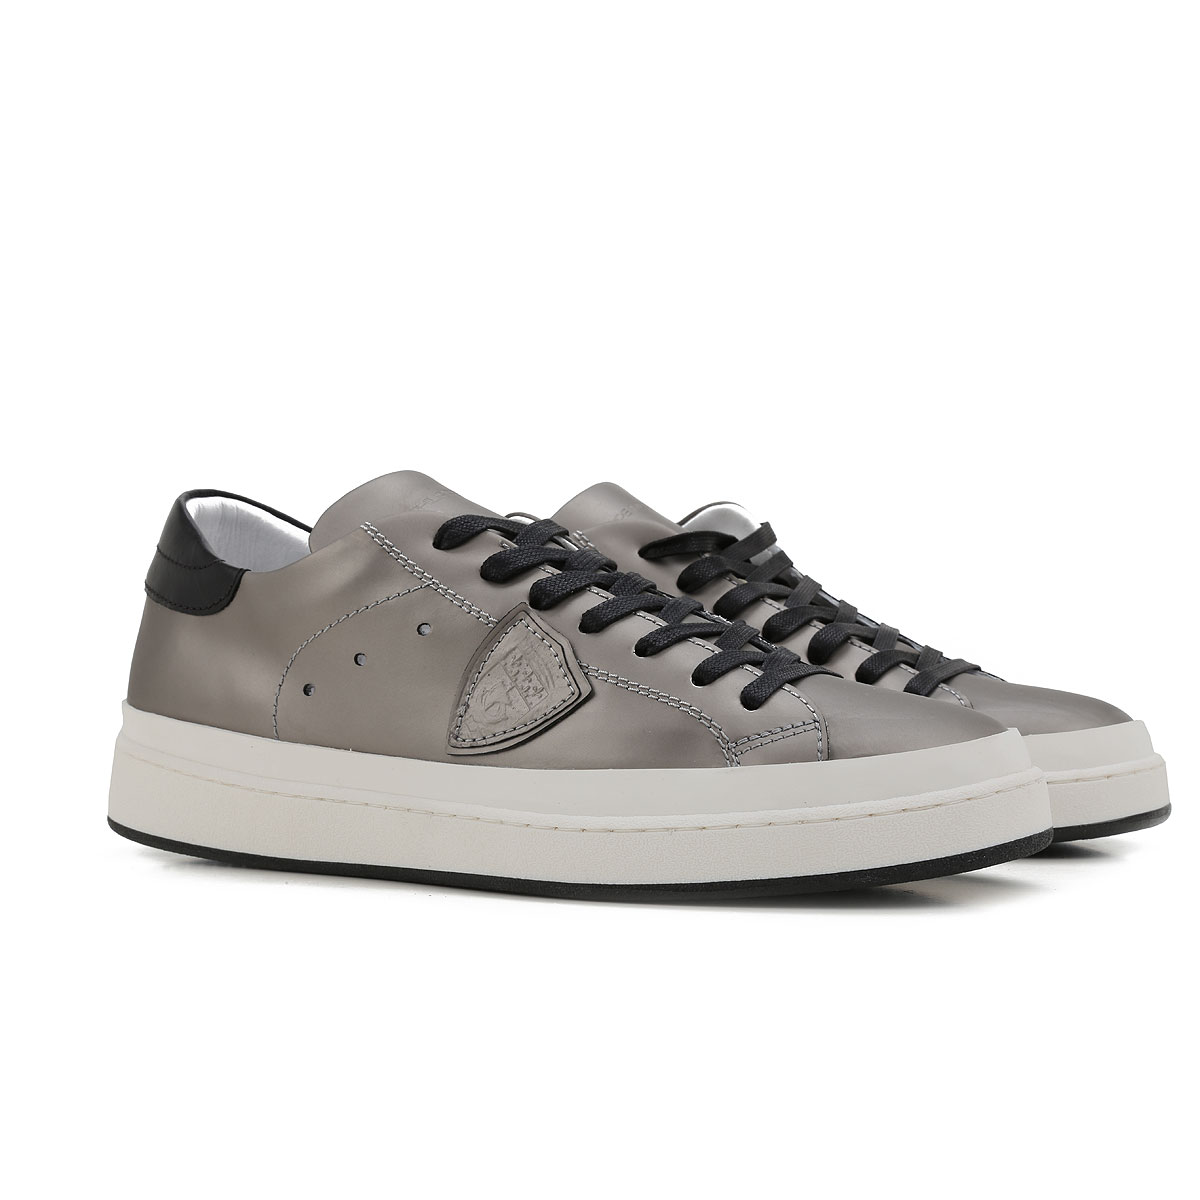 Philippe Model Sneakers for Men On Sale in Outlet, Metallic Grey, Leather, 2019, 7 9.5